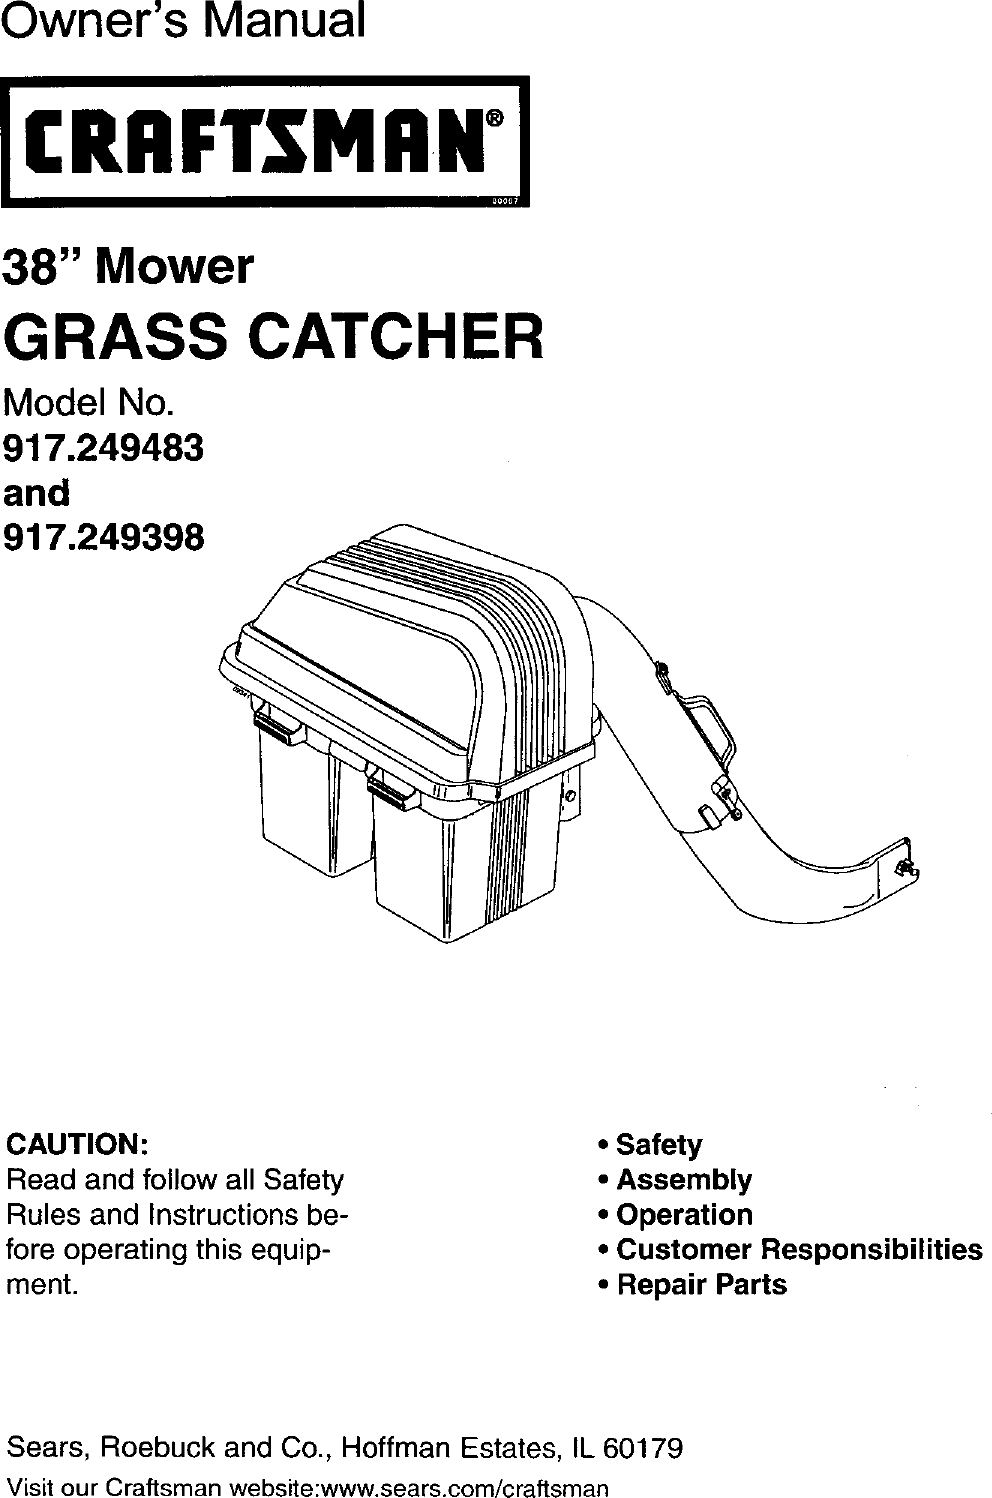 Craftsman 917249398 User Manual GRASS CATCHER Manuals And